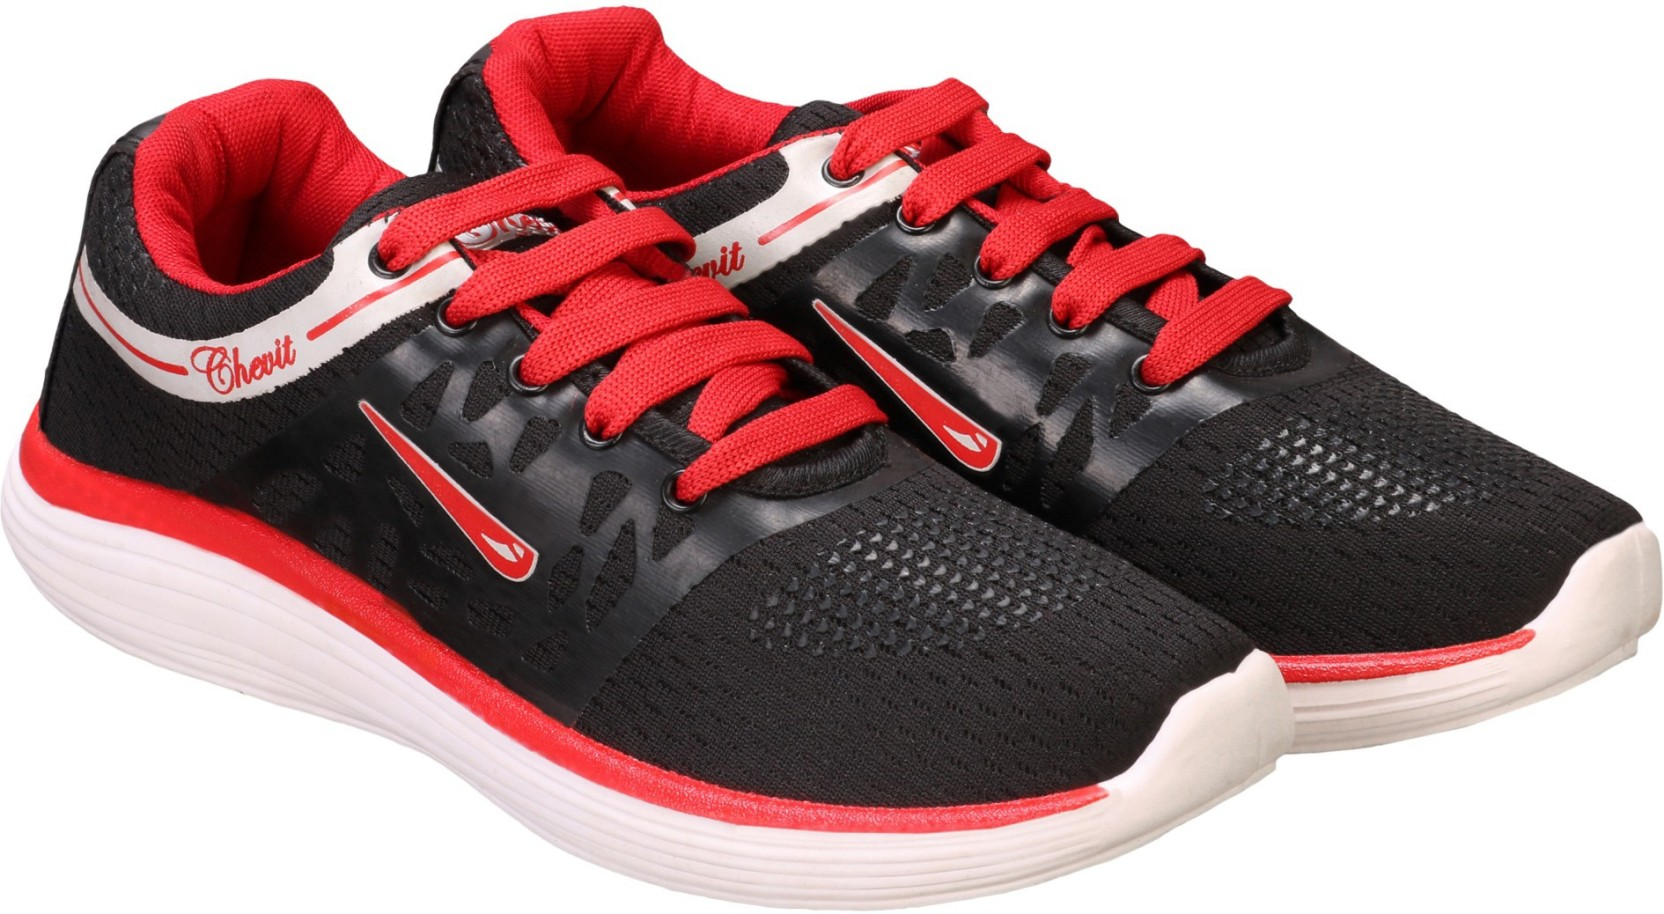 bc8afe8aba8 Chevit Black & Red Sports Shoes (Running Shoes) Running Shoes For Men  (Black, Red)